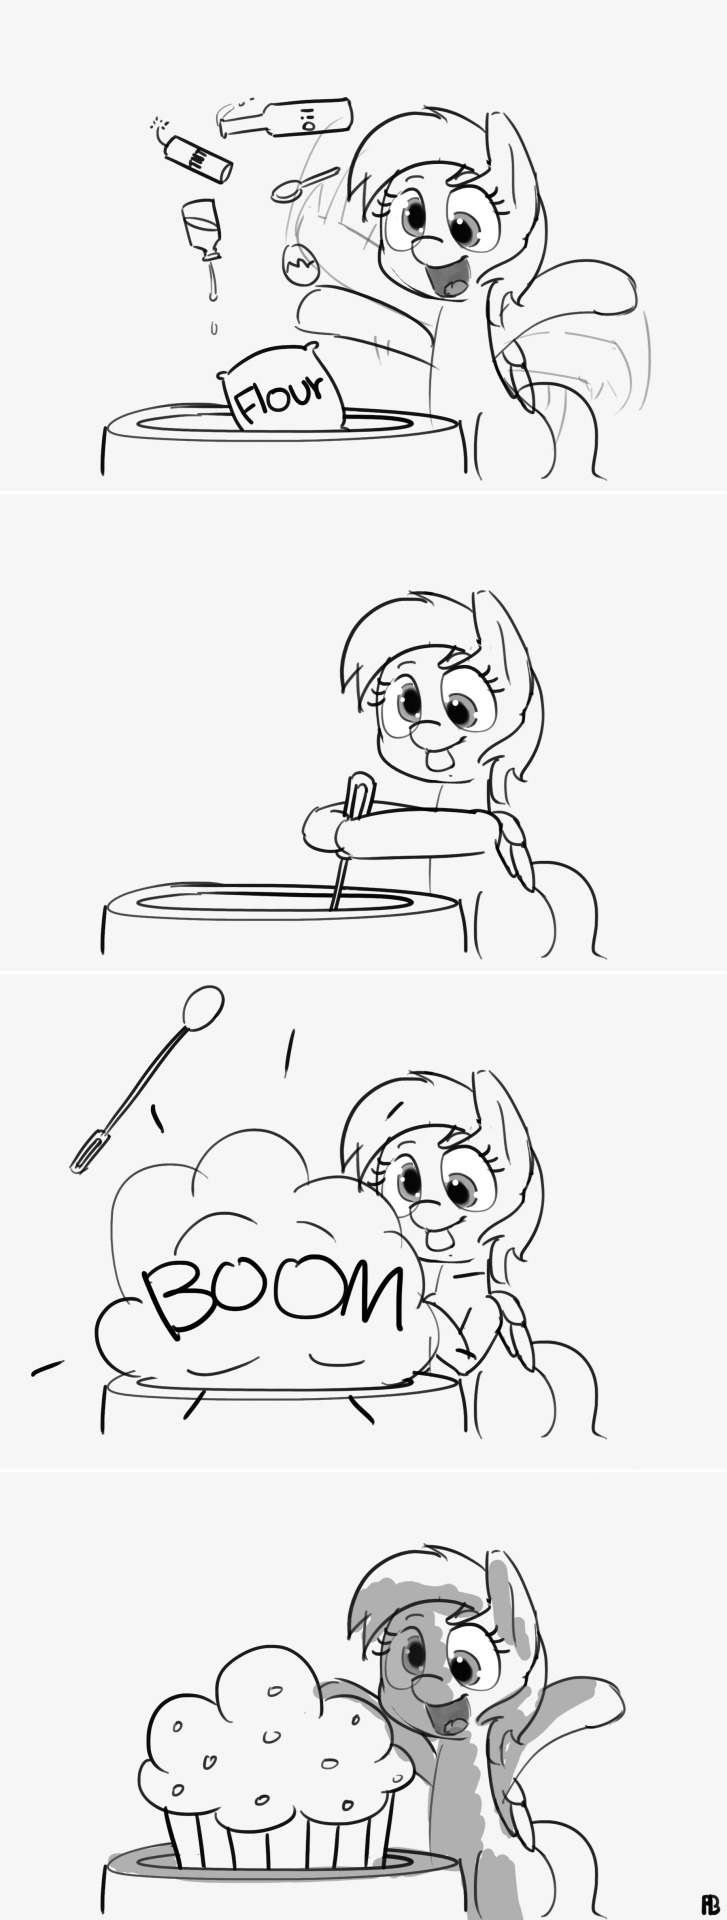 derpy hooves,comic,muffins